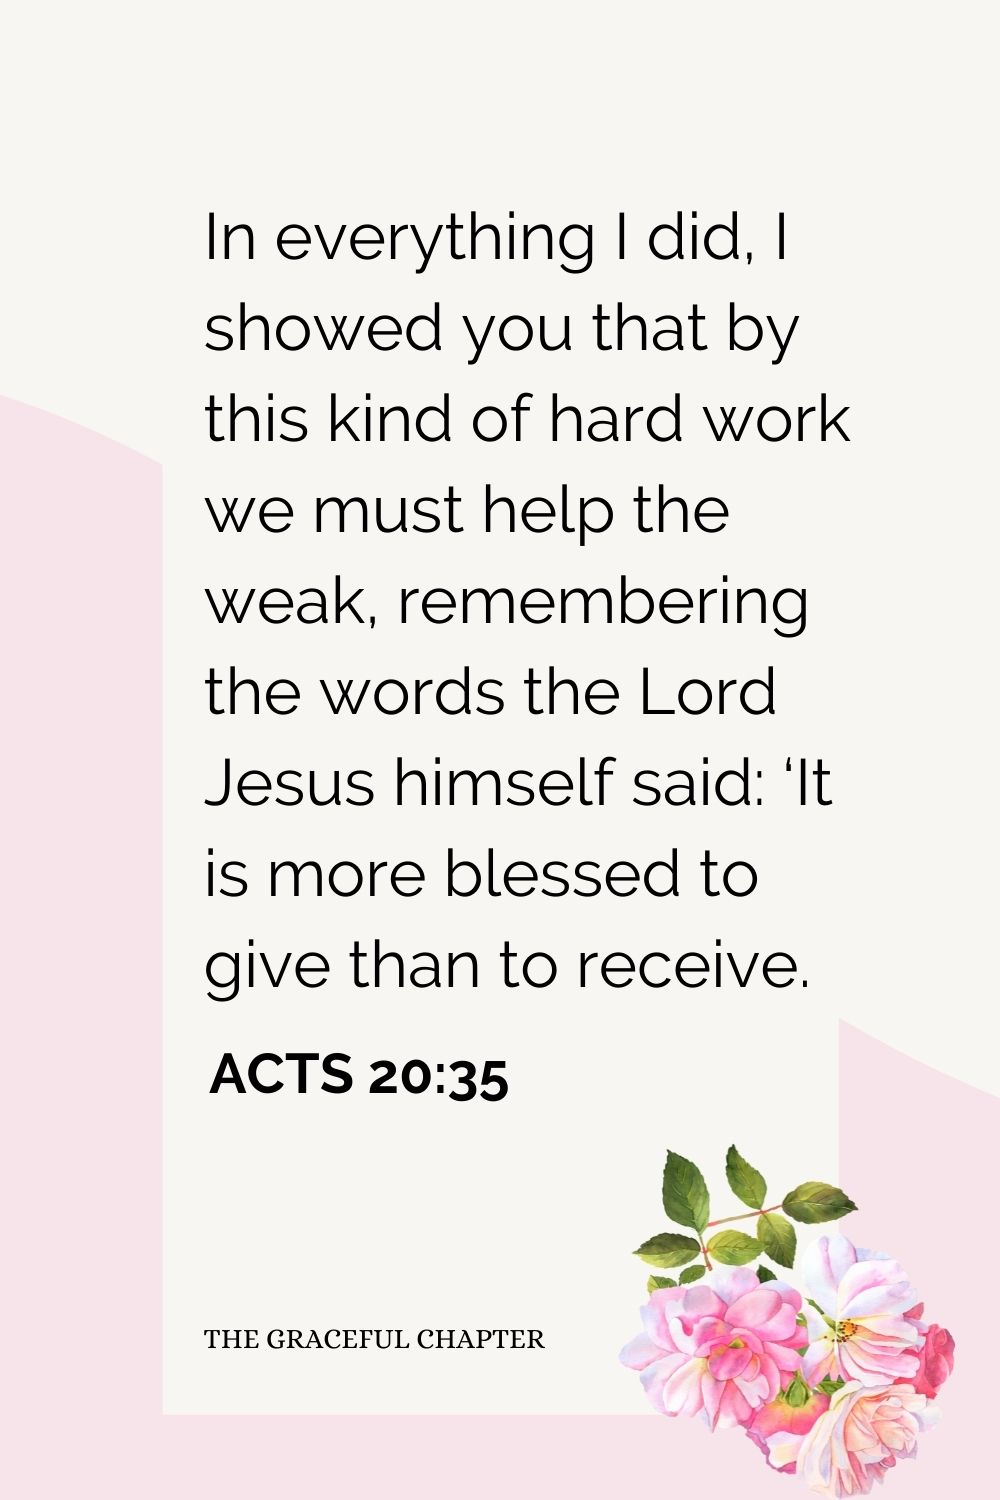 In everything I did, I showed you that by this kind of hard work we must help the weak, remembering the words the Lord Jesus himself said: 'It is more blessed to give than to receive. Acts 20:35